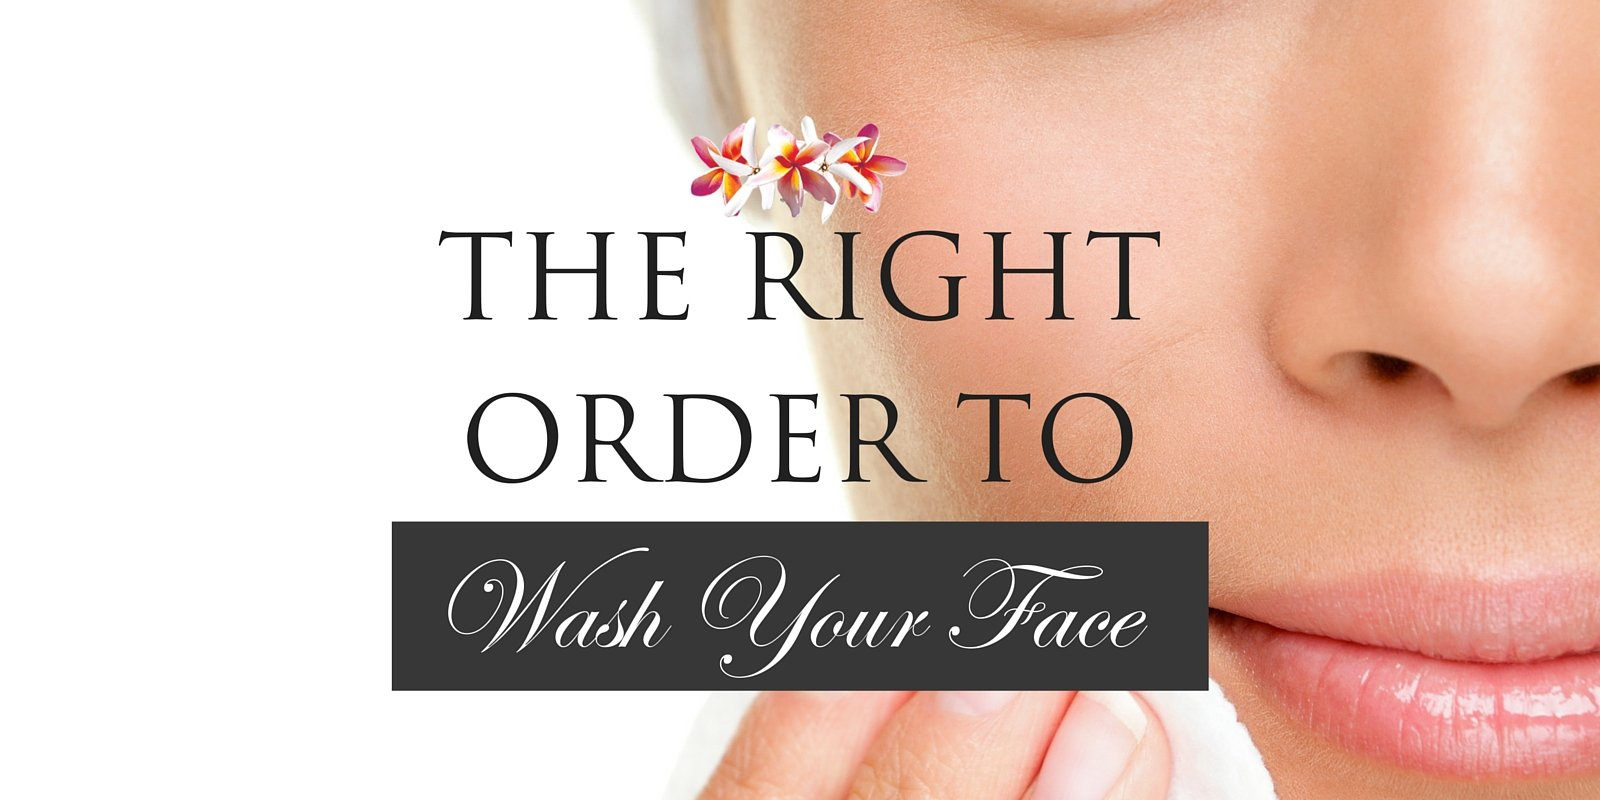 The Right Order to Wash Your Face